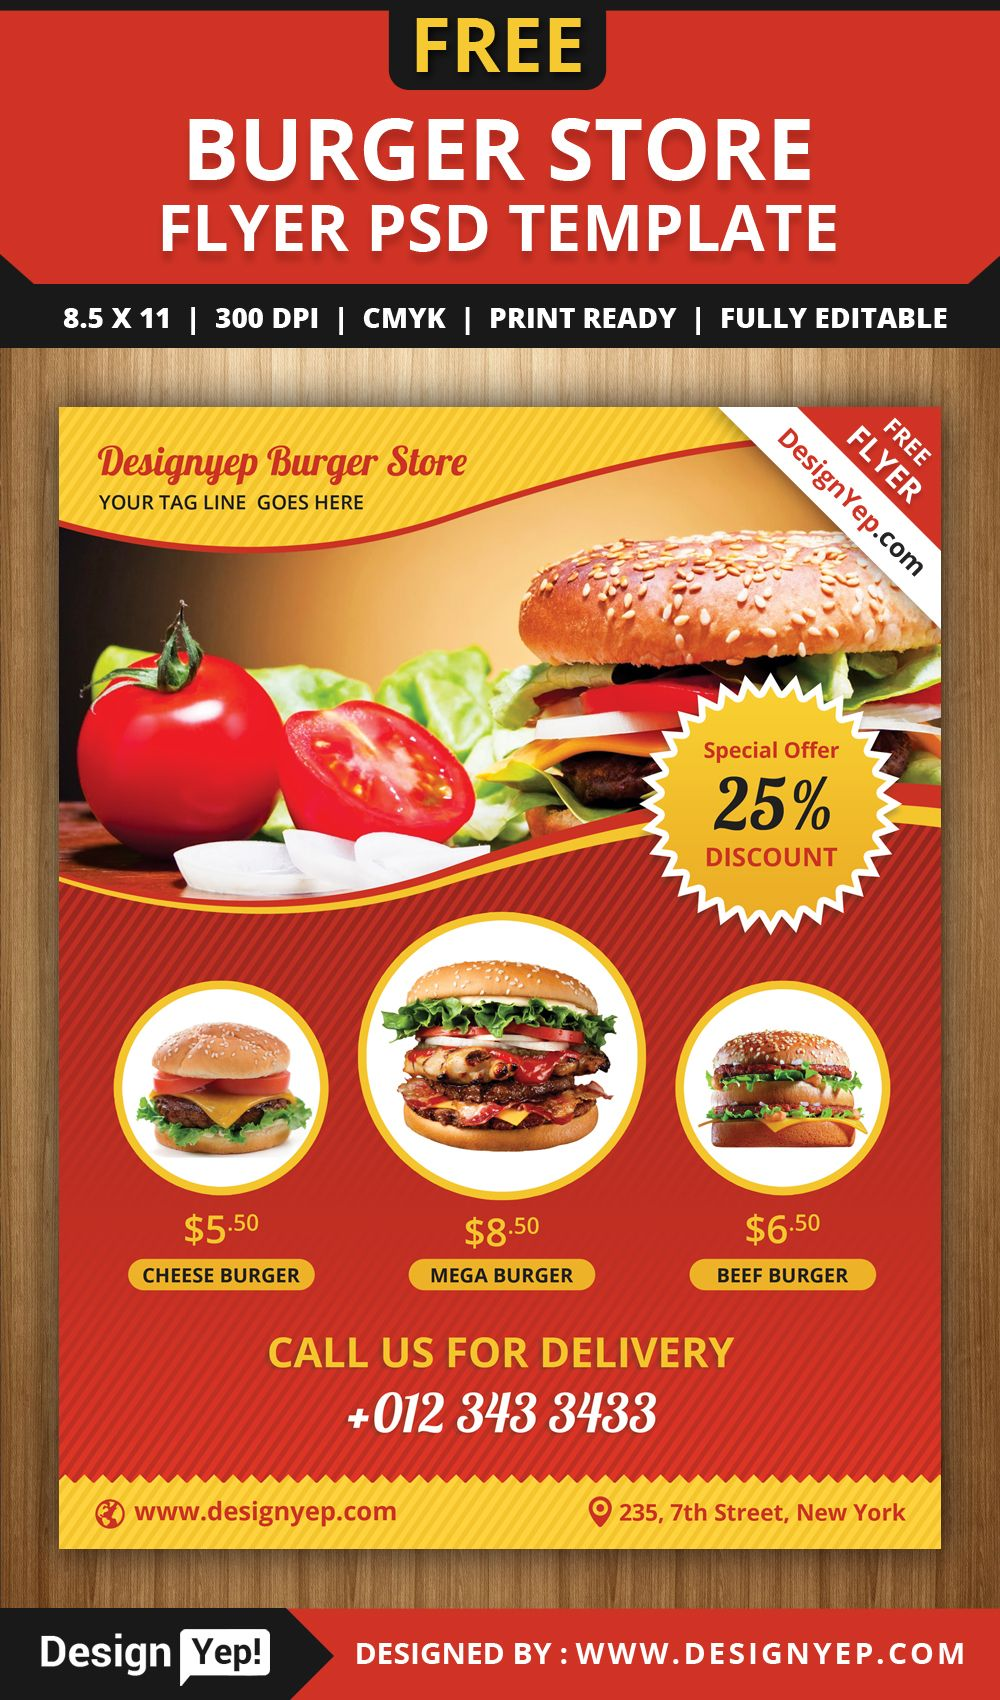 Free Burger Store Flyer PSD Template Menu flyer